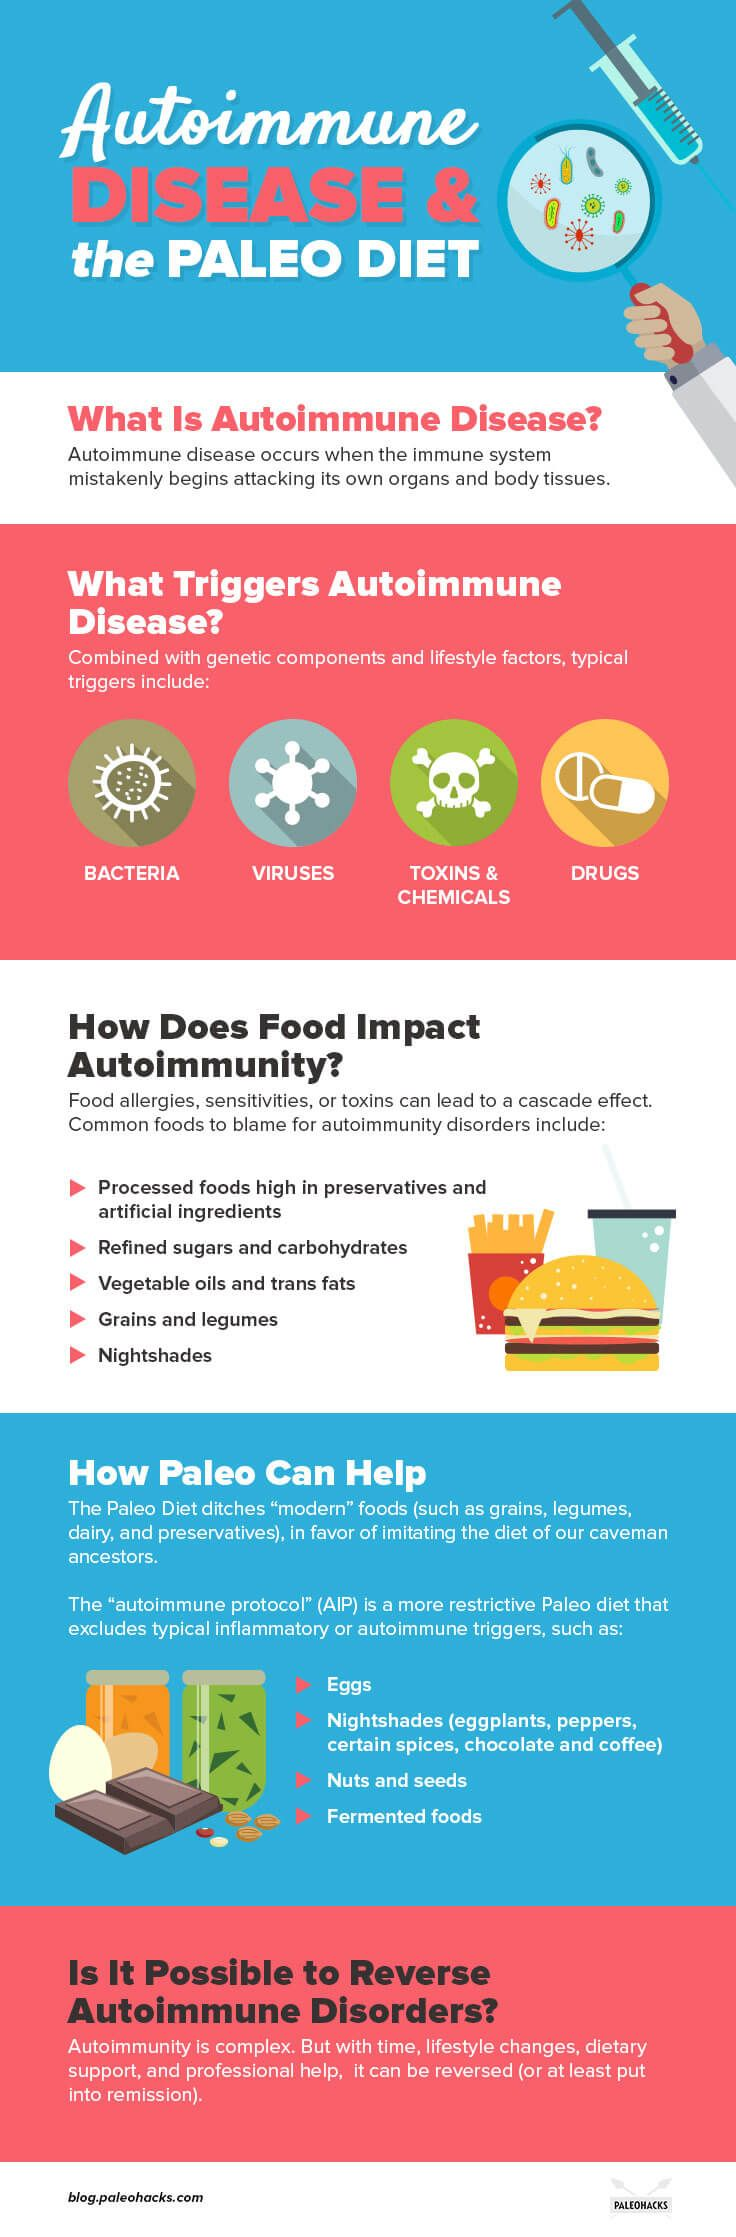 Autoimmune disorders can be triggered by a combination of genetics and lifestyle factors, like stress and poor eating habits. Discover how a Paleo diet can help heal and even reverse autoimmunity. Read the full article here: http://paleo.co/autoimmunitypaleodiet